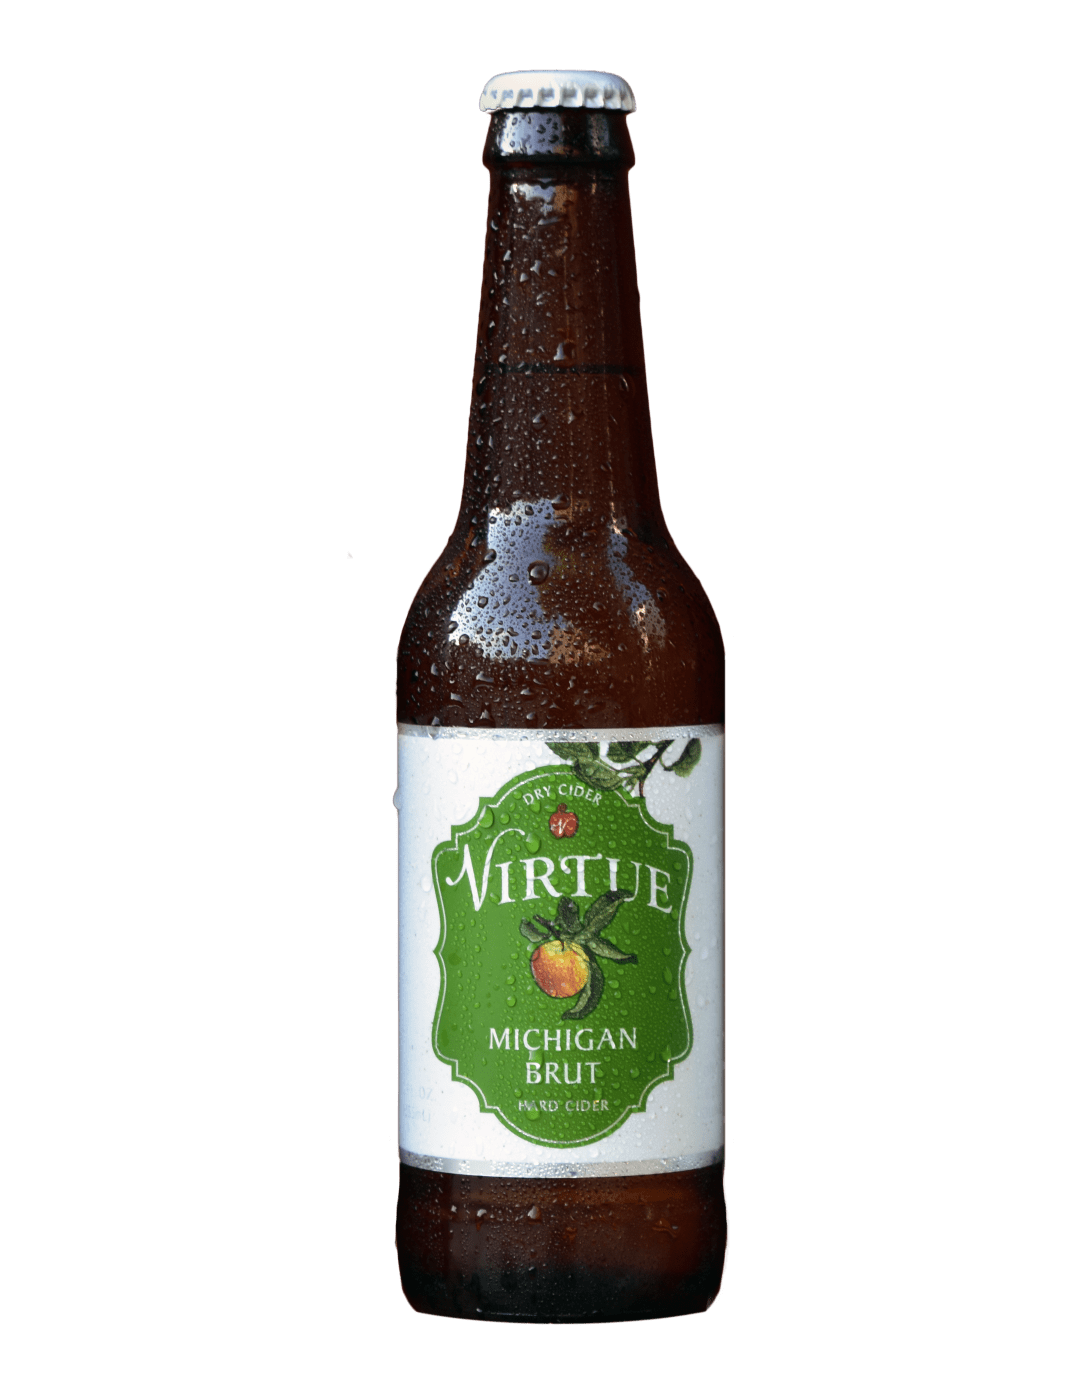 Virtue Michigan Brut Cider